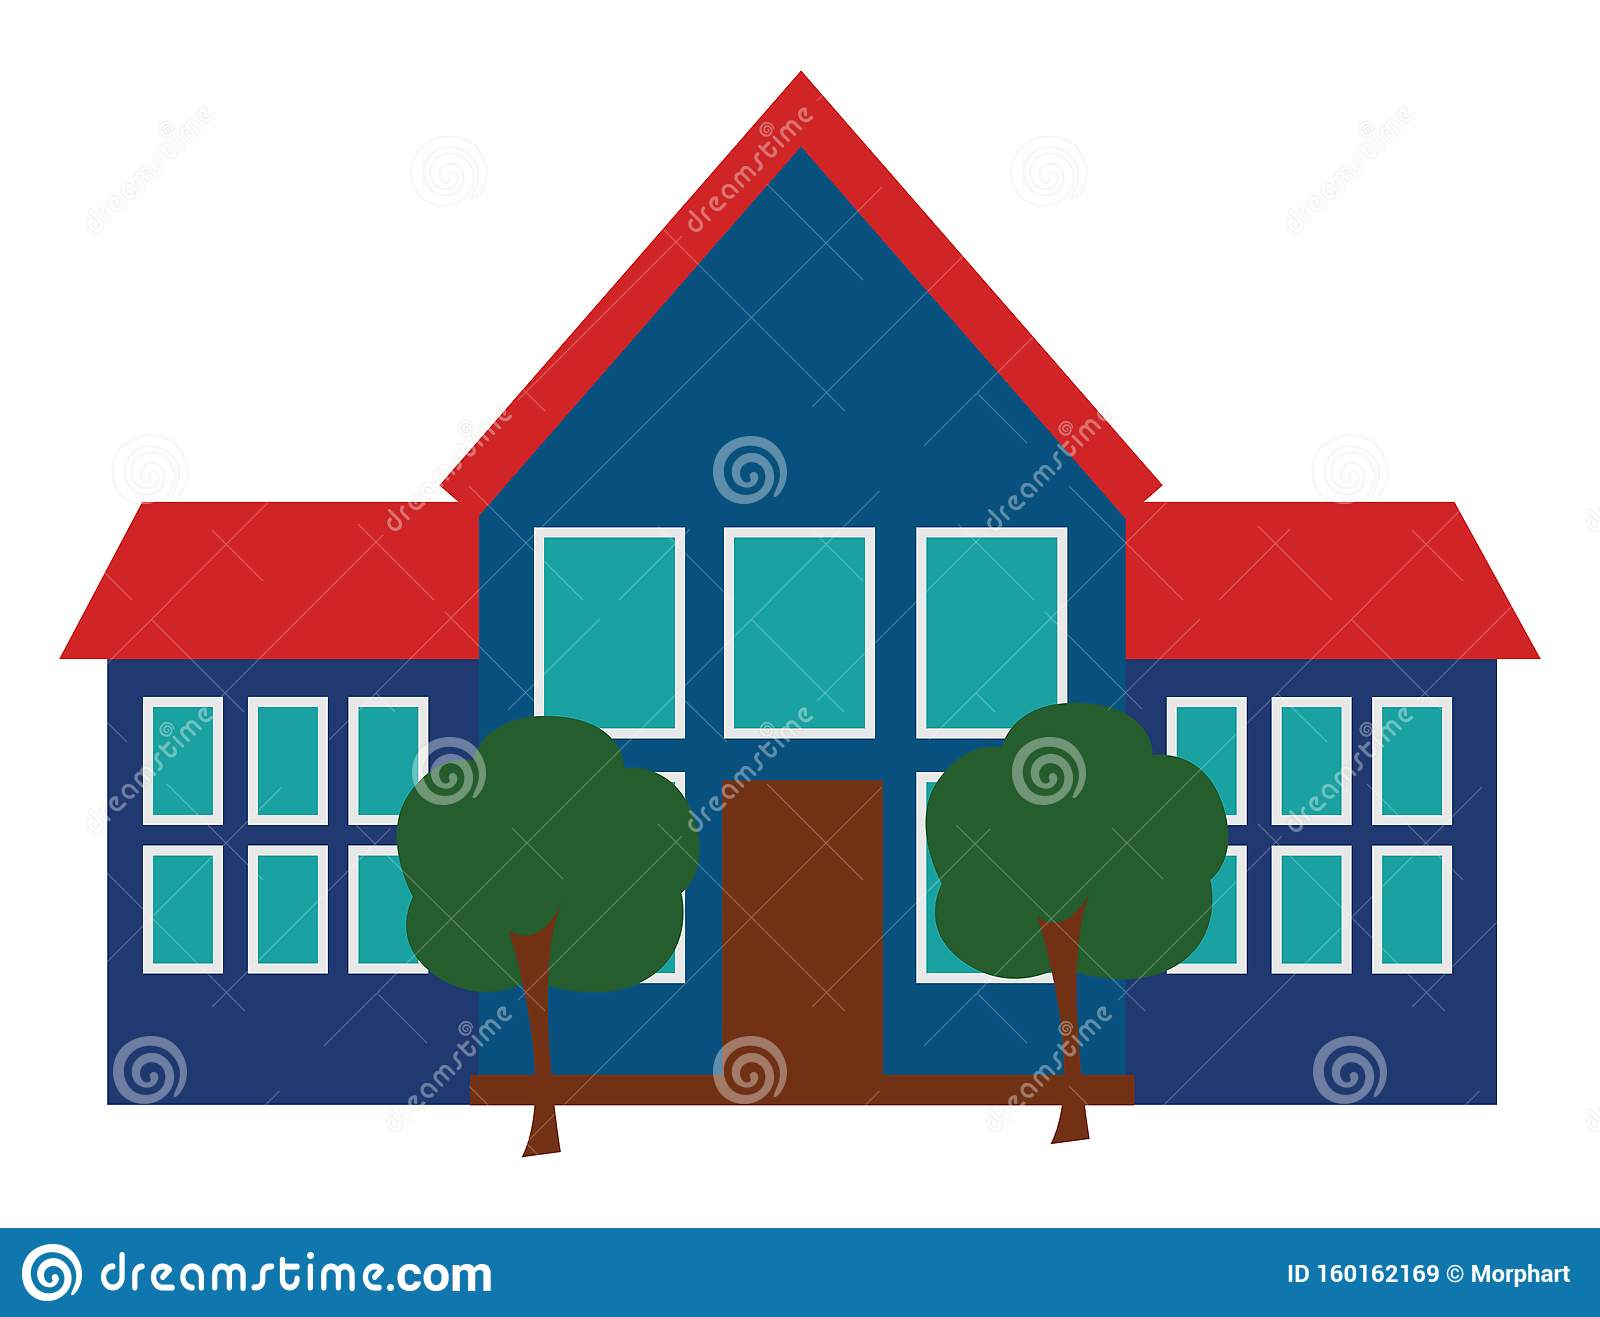 Clipart Of The School And Its Premises Viewed From The Front Vector Or Color Illustration Stock Vector Illustration Of Front Wall 160162169